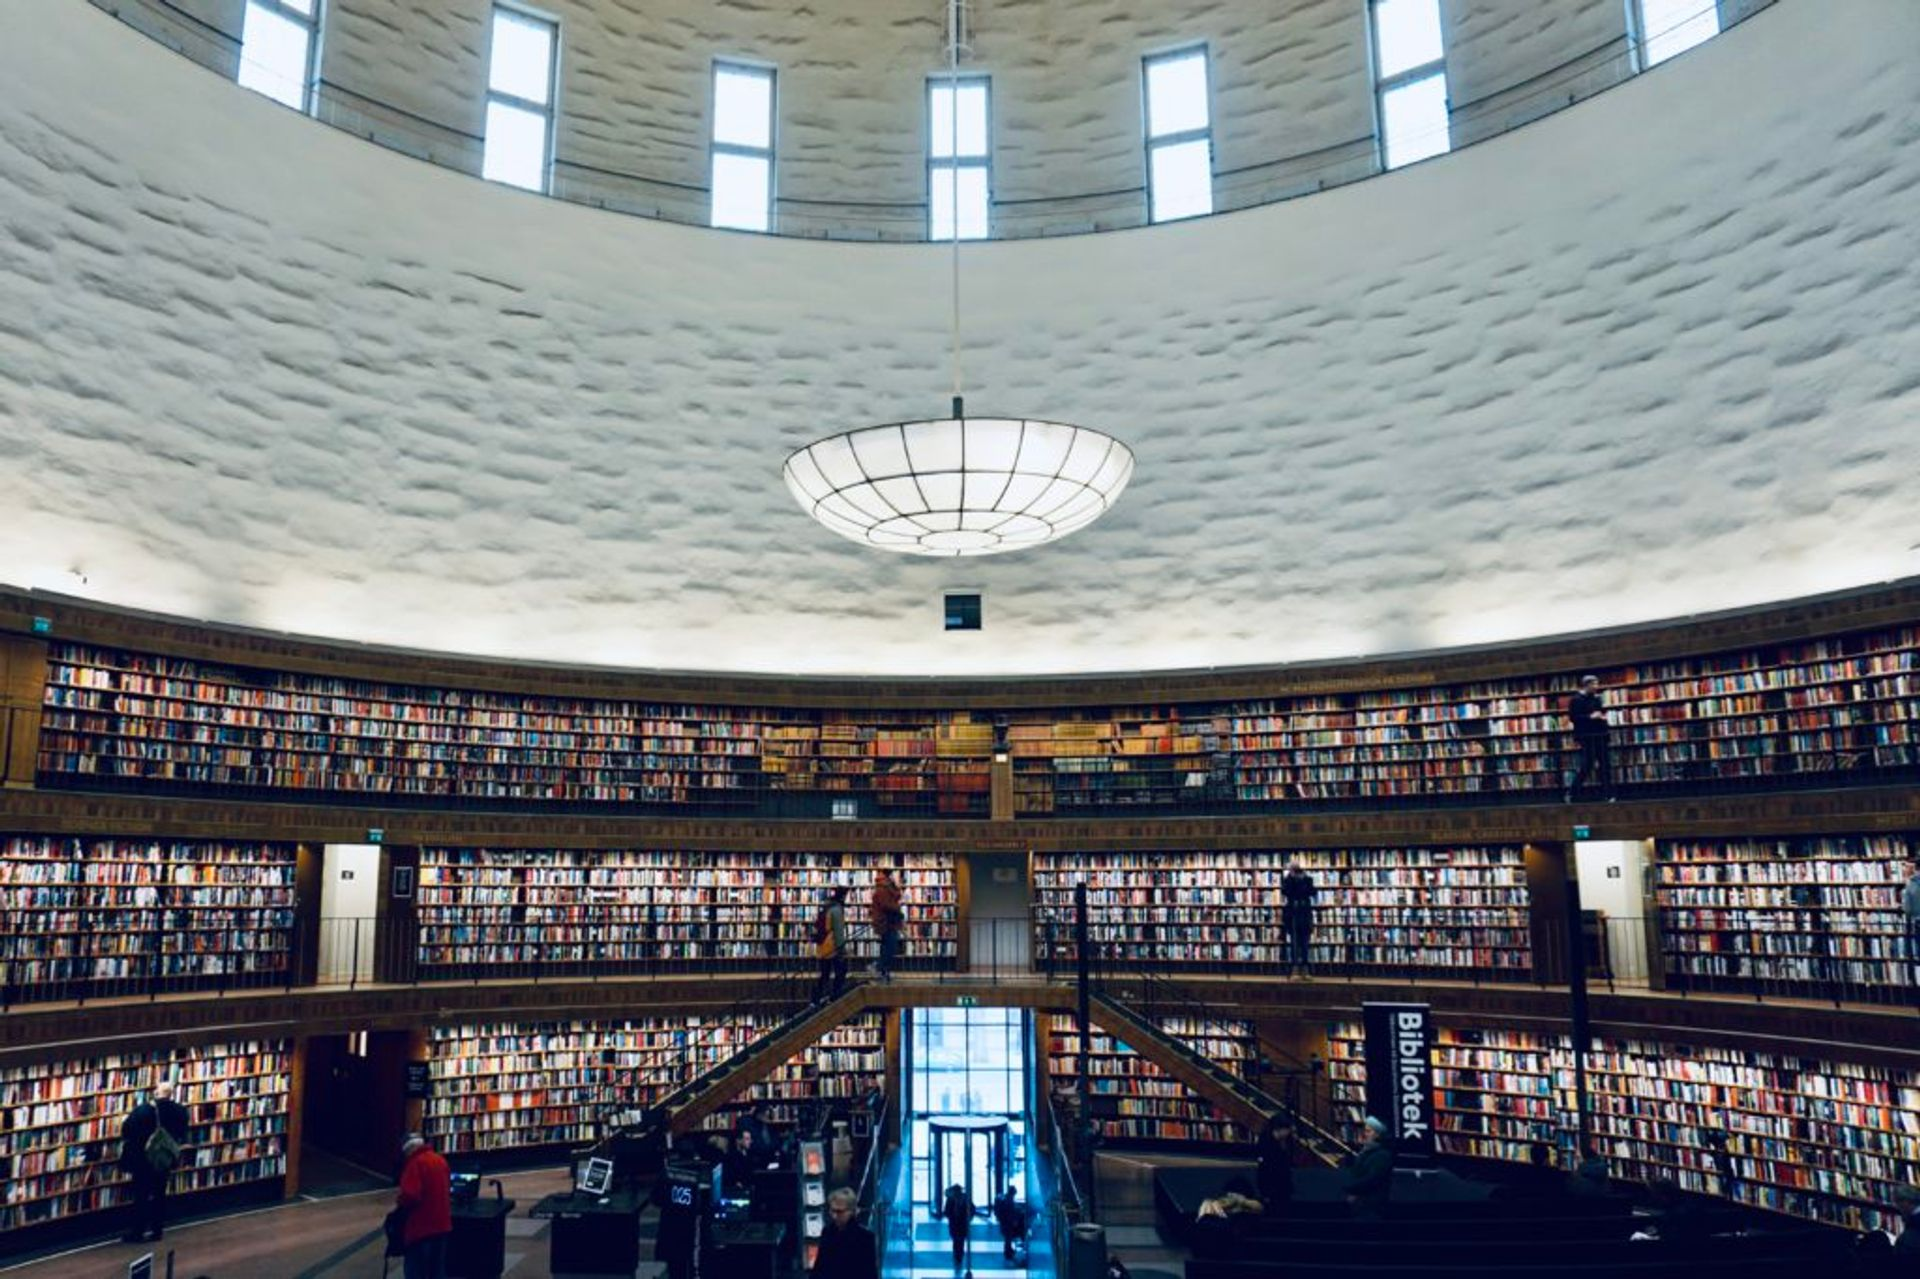 Interior of Stockholm's public library.